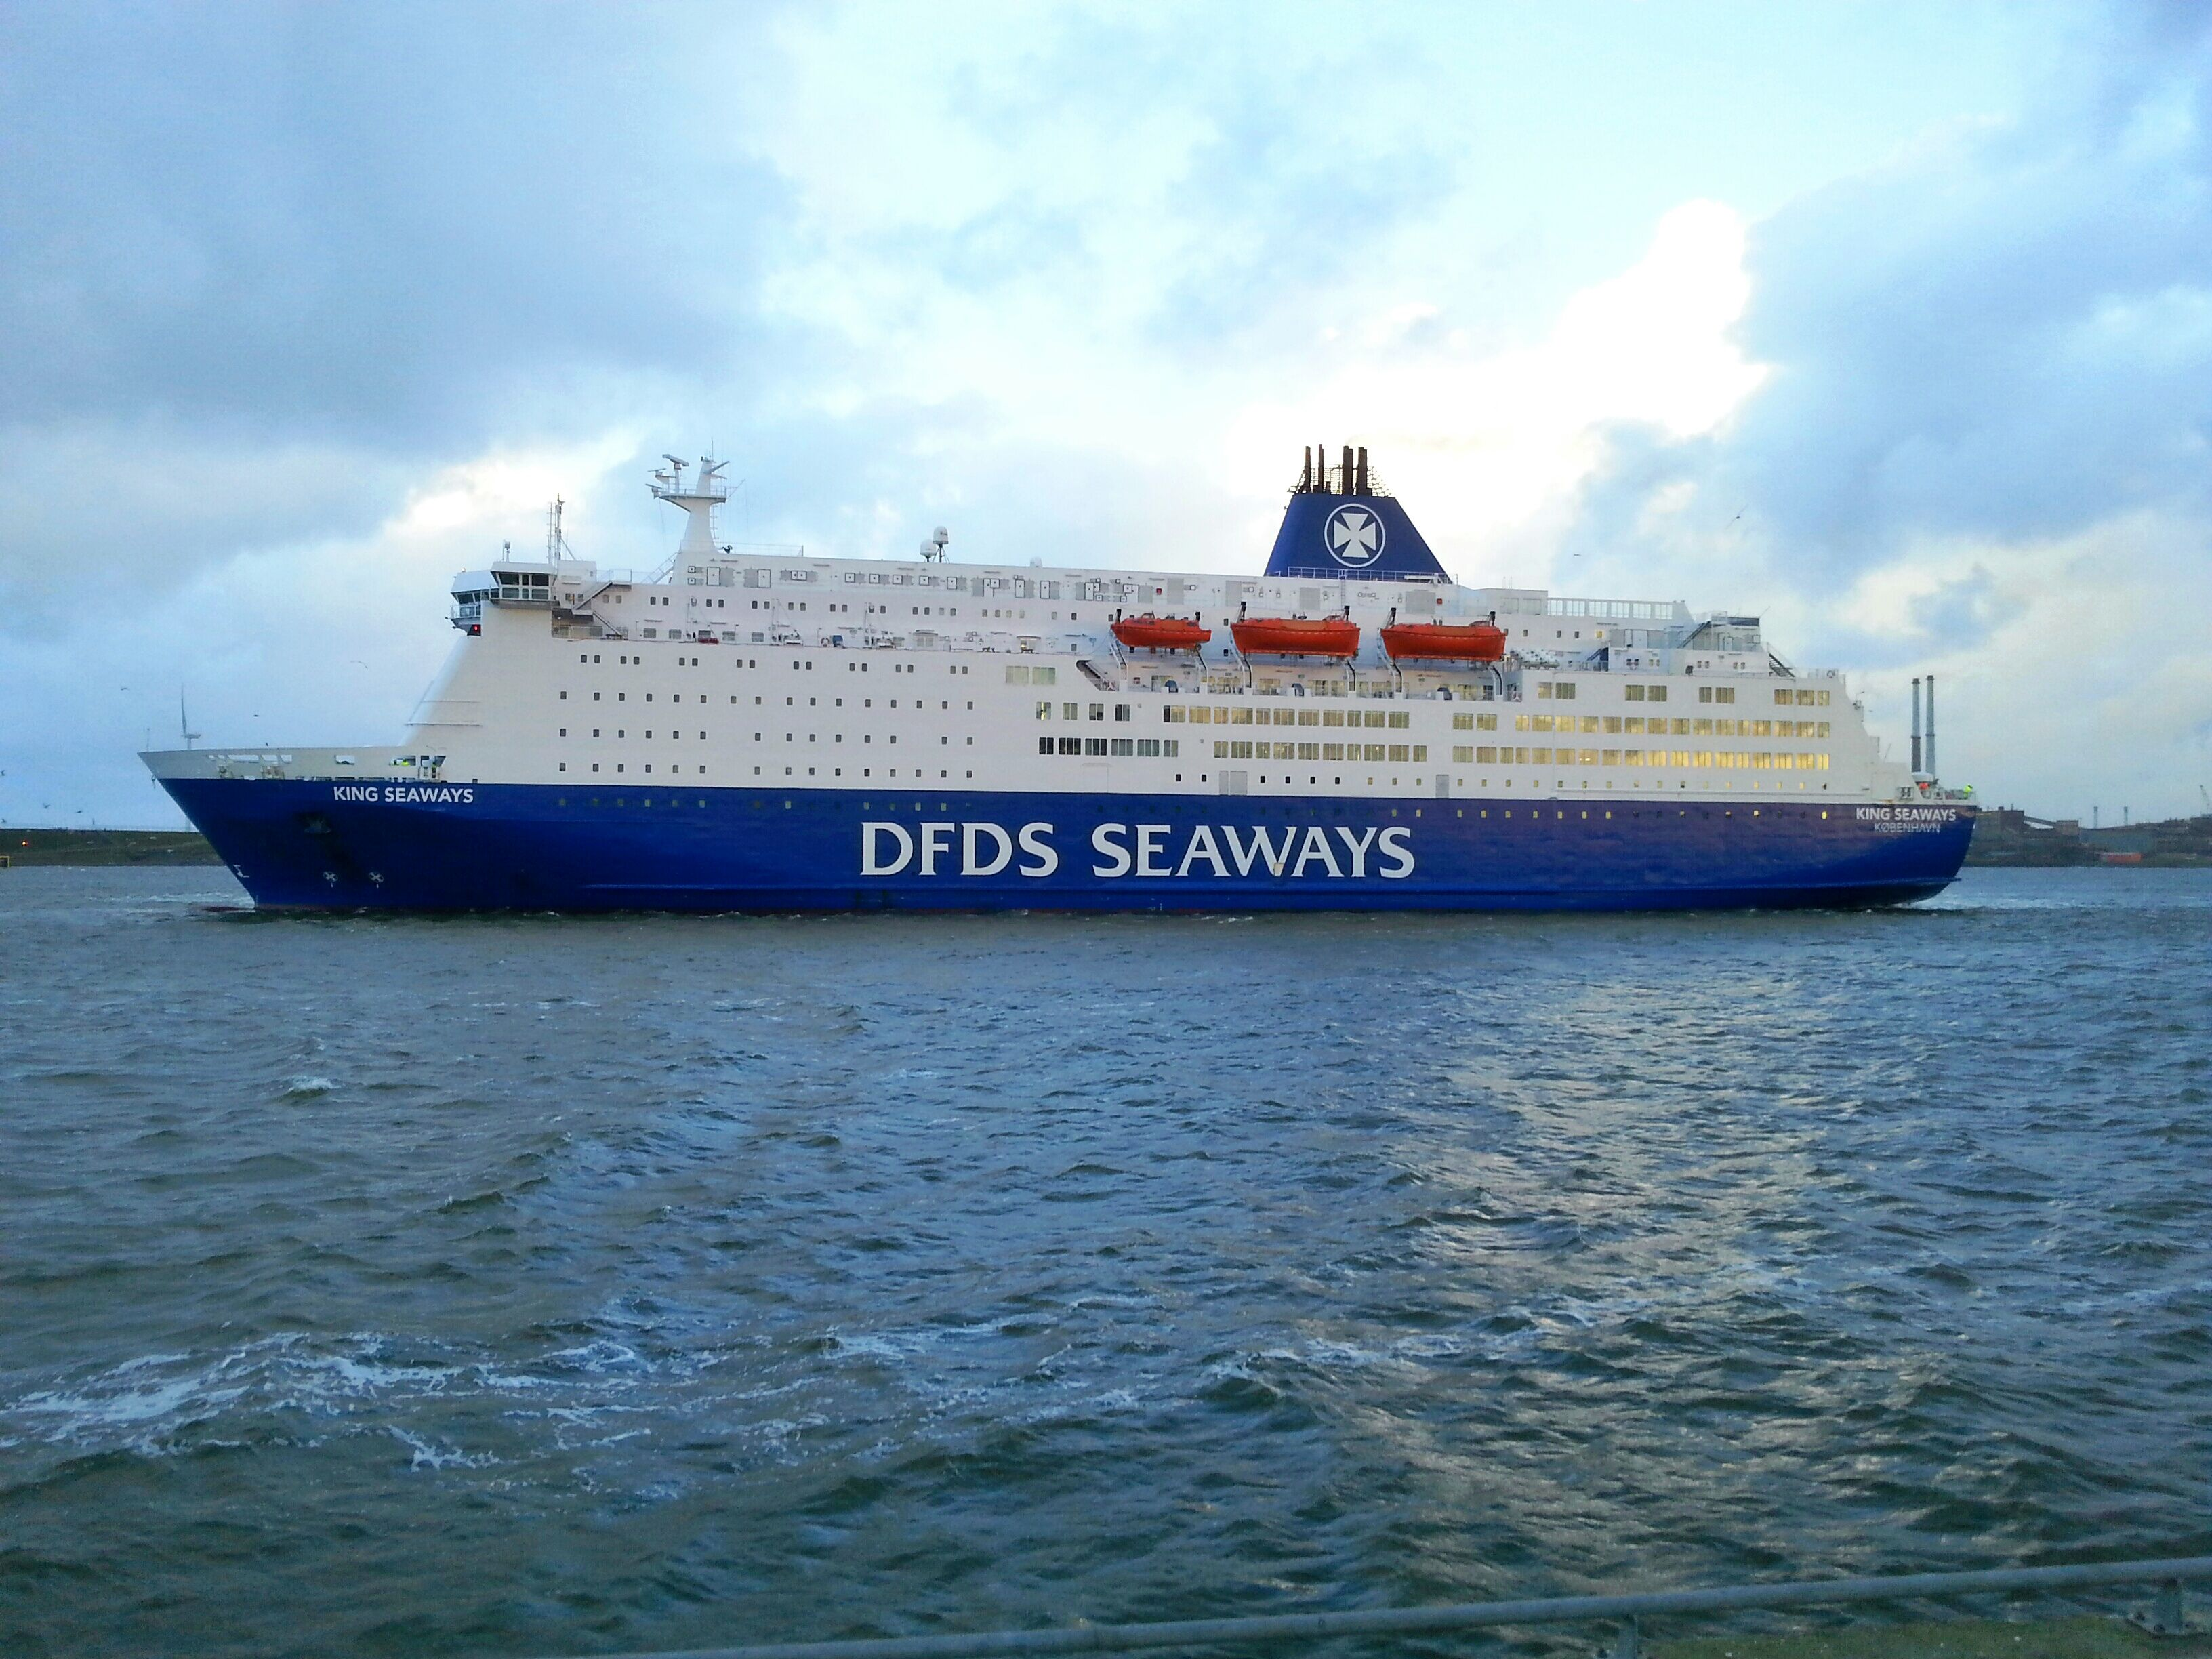 King Seaways Is Weer Terug Uit Dok Welcome Back Schepen Newcastle Upon Tyne Passagier